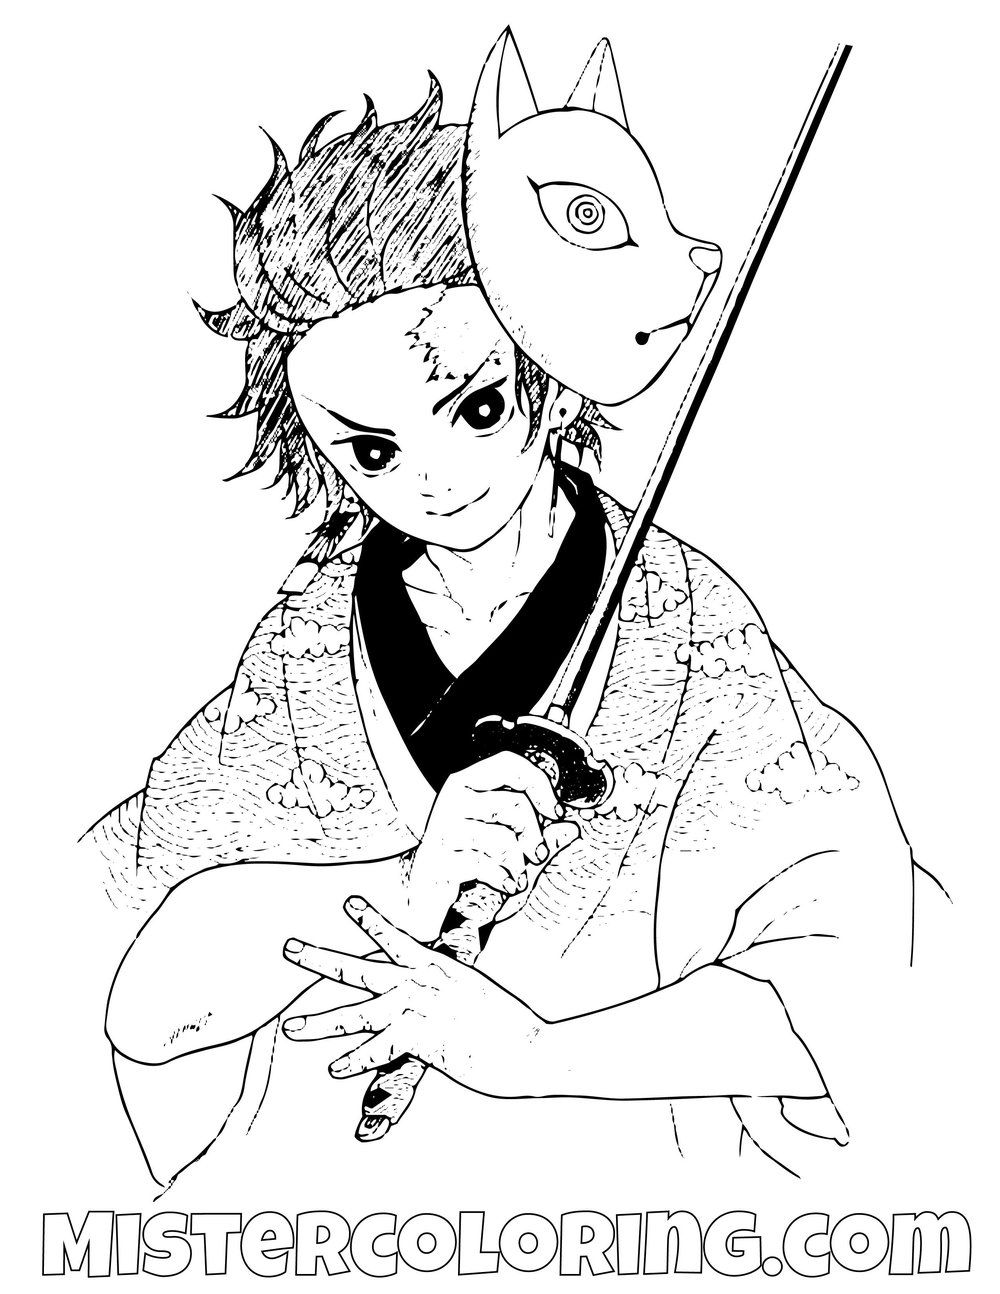 Tanjiro Kamado With Sword Demon Slayer Coloring Pages For Kids ...